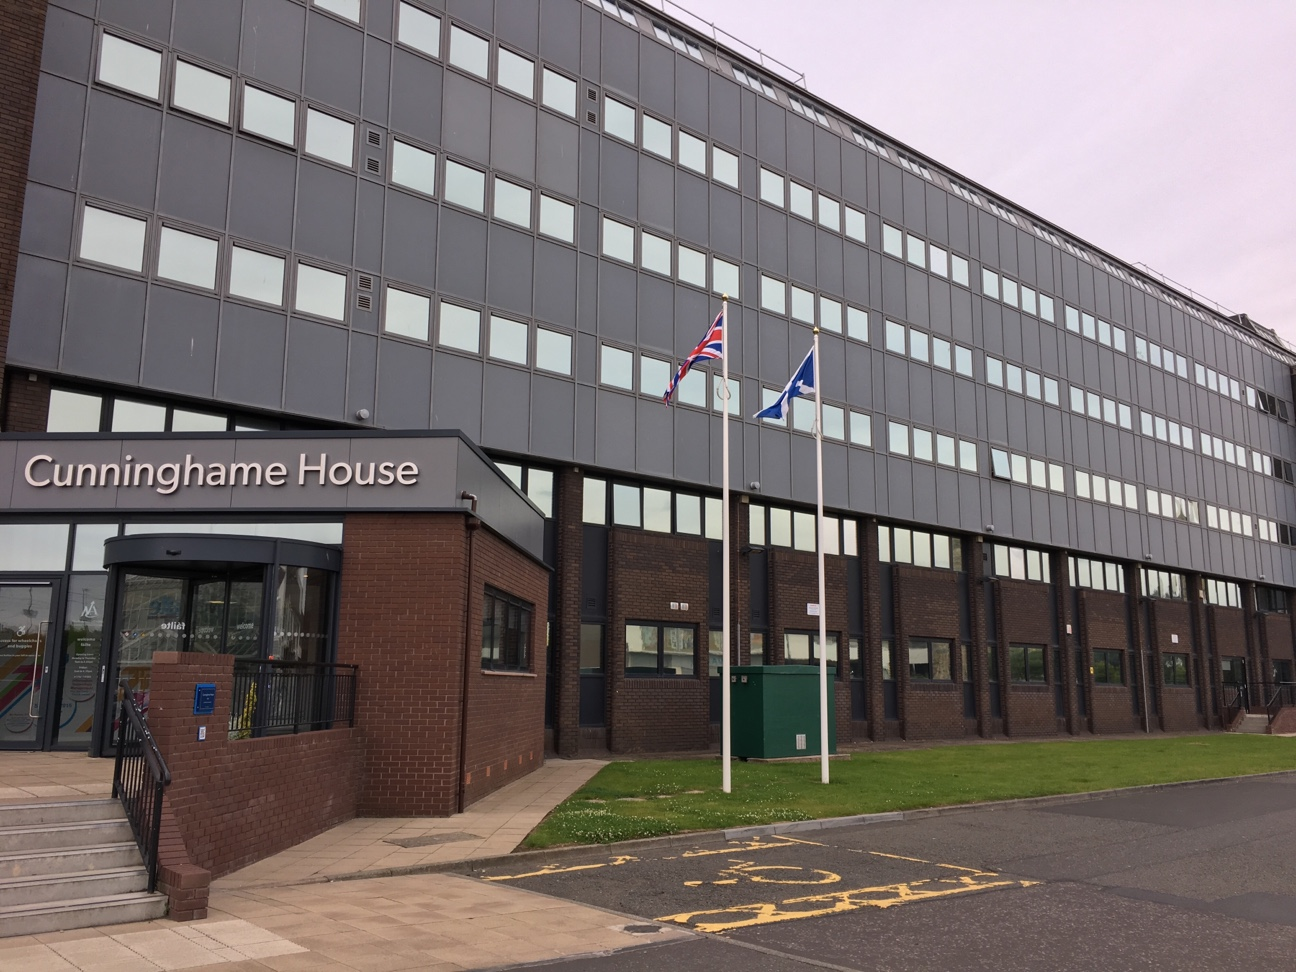 North Ayrshire set to invest £243million but 50 jobs are to be axed